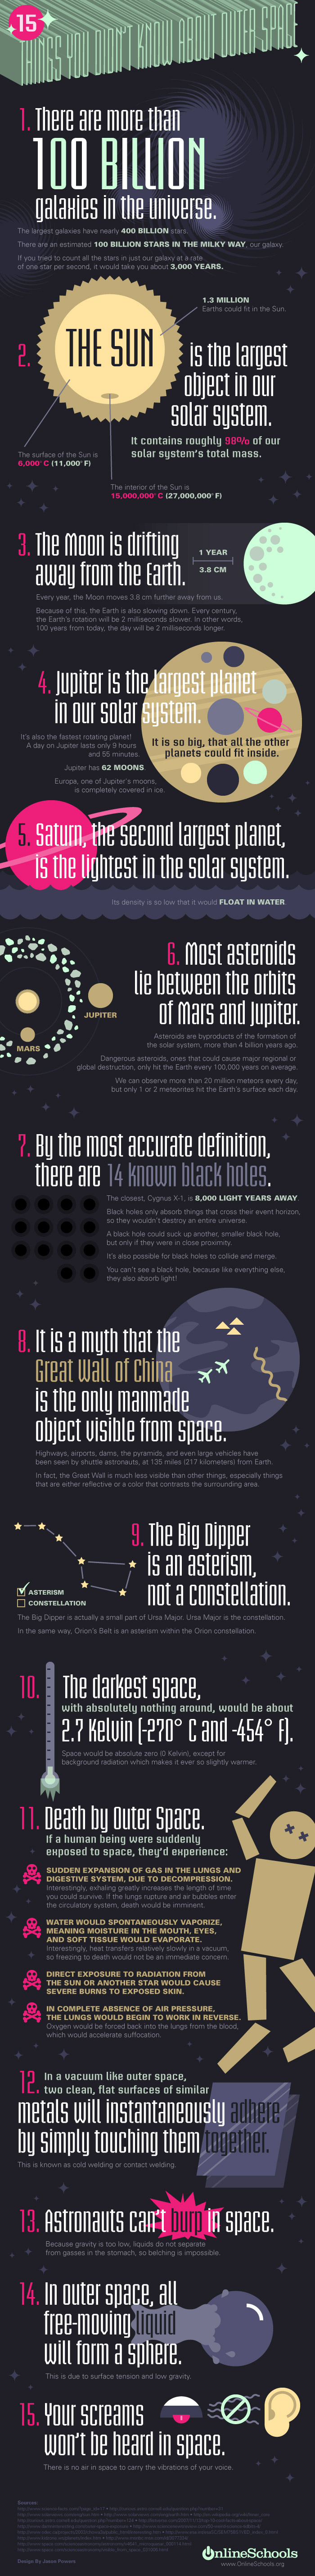 outer space 15 Amazing Facts About Outer Space